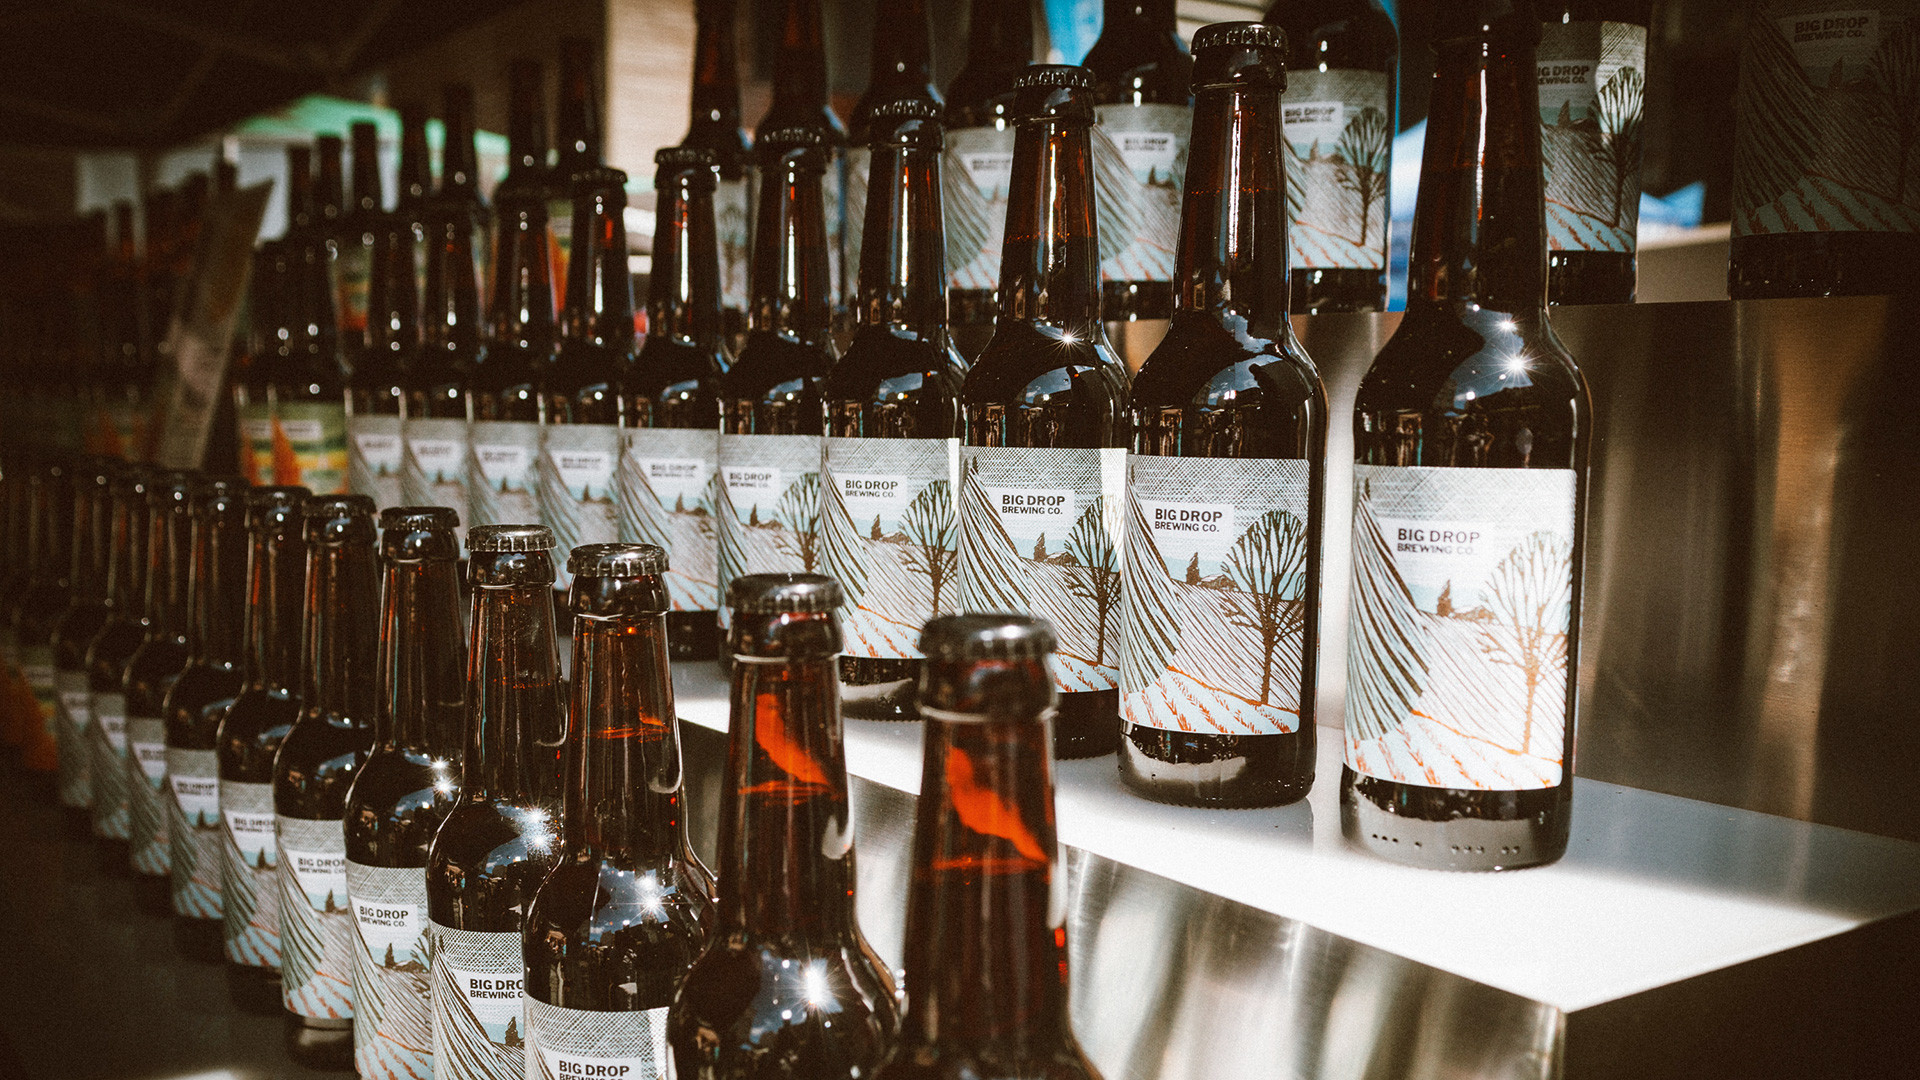 Slough-based low-alcohol brewer Big Drop's beer